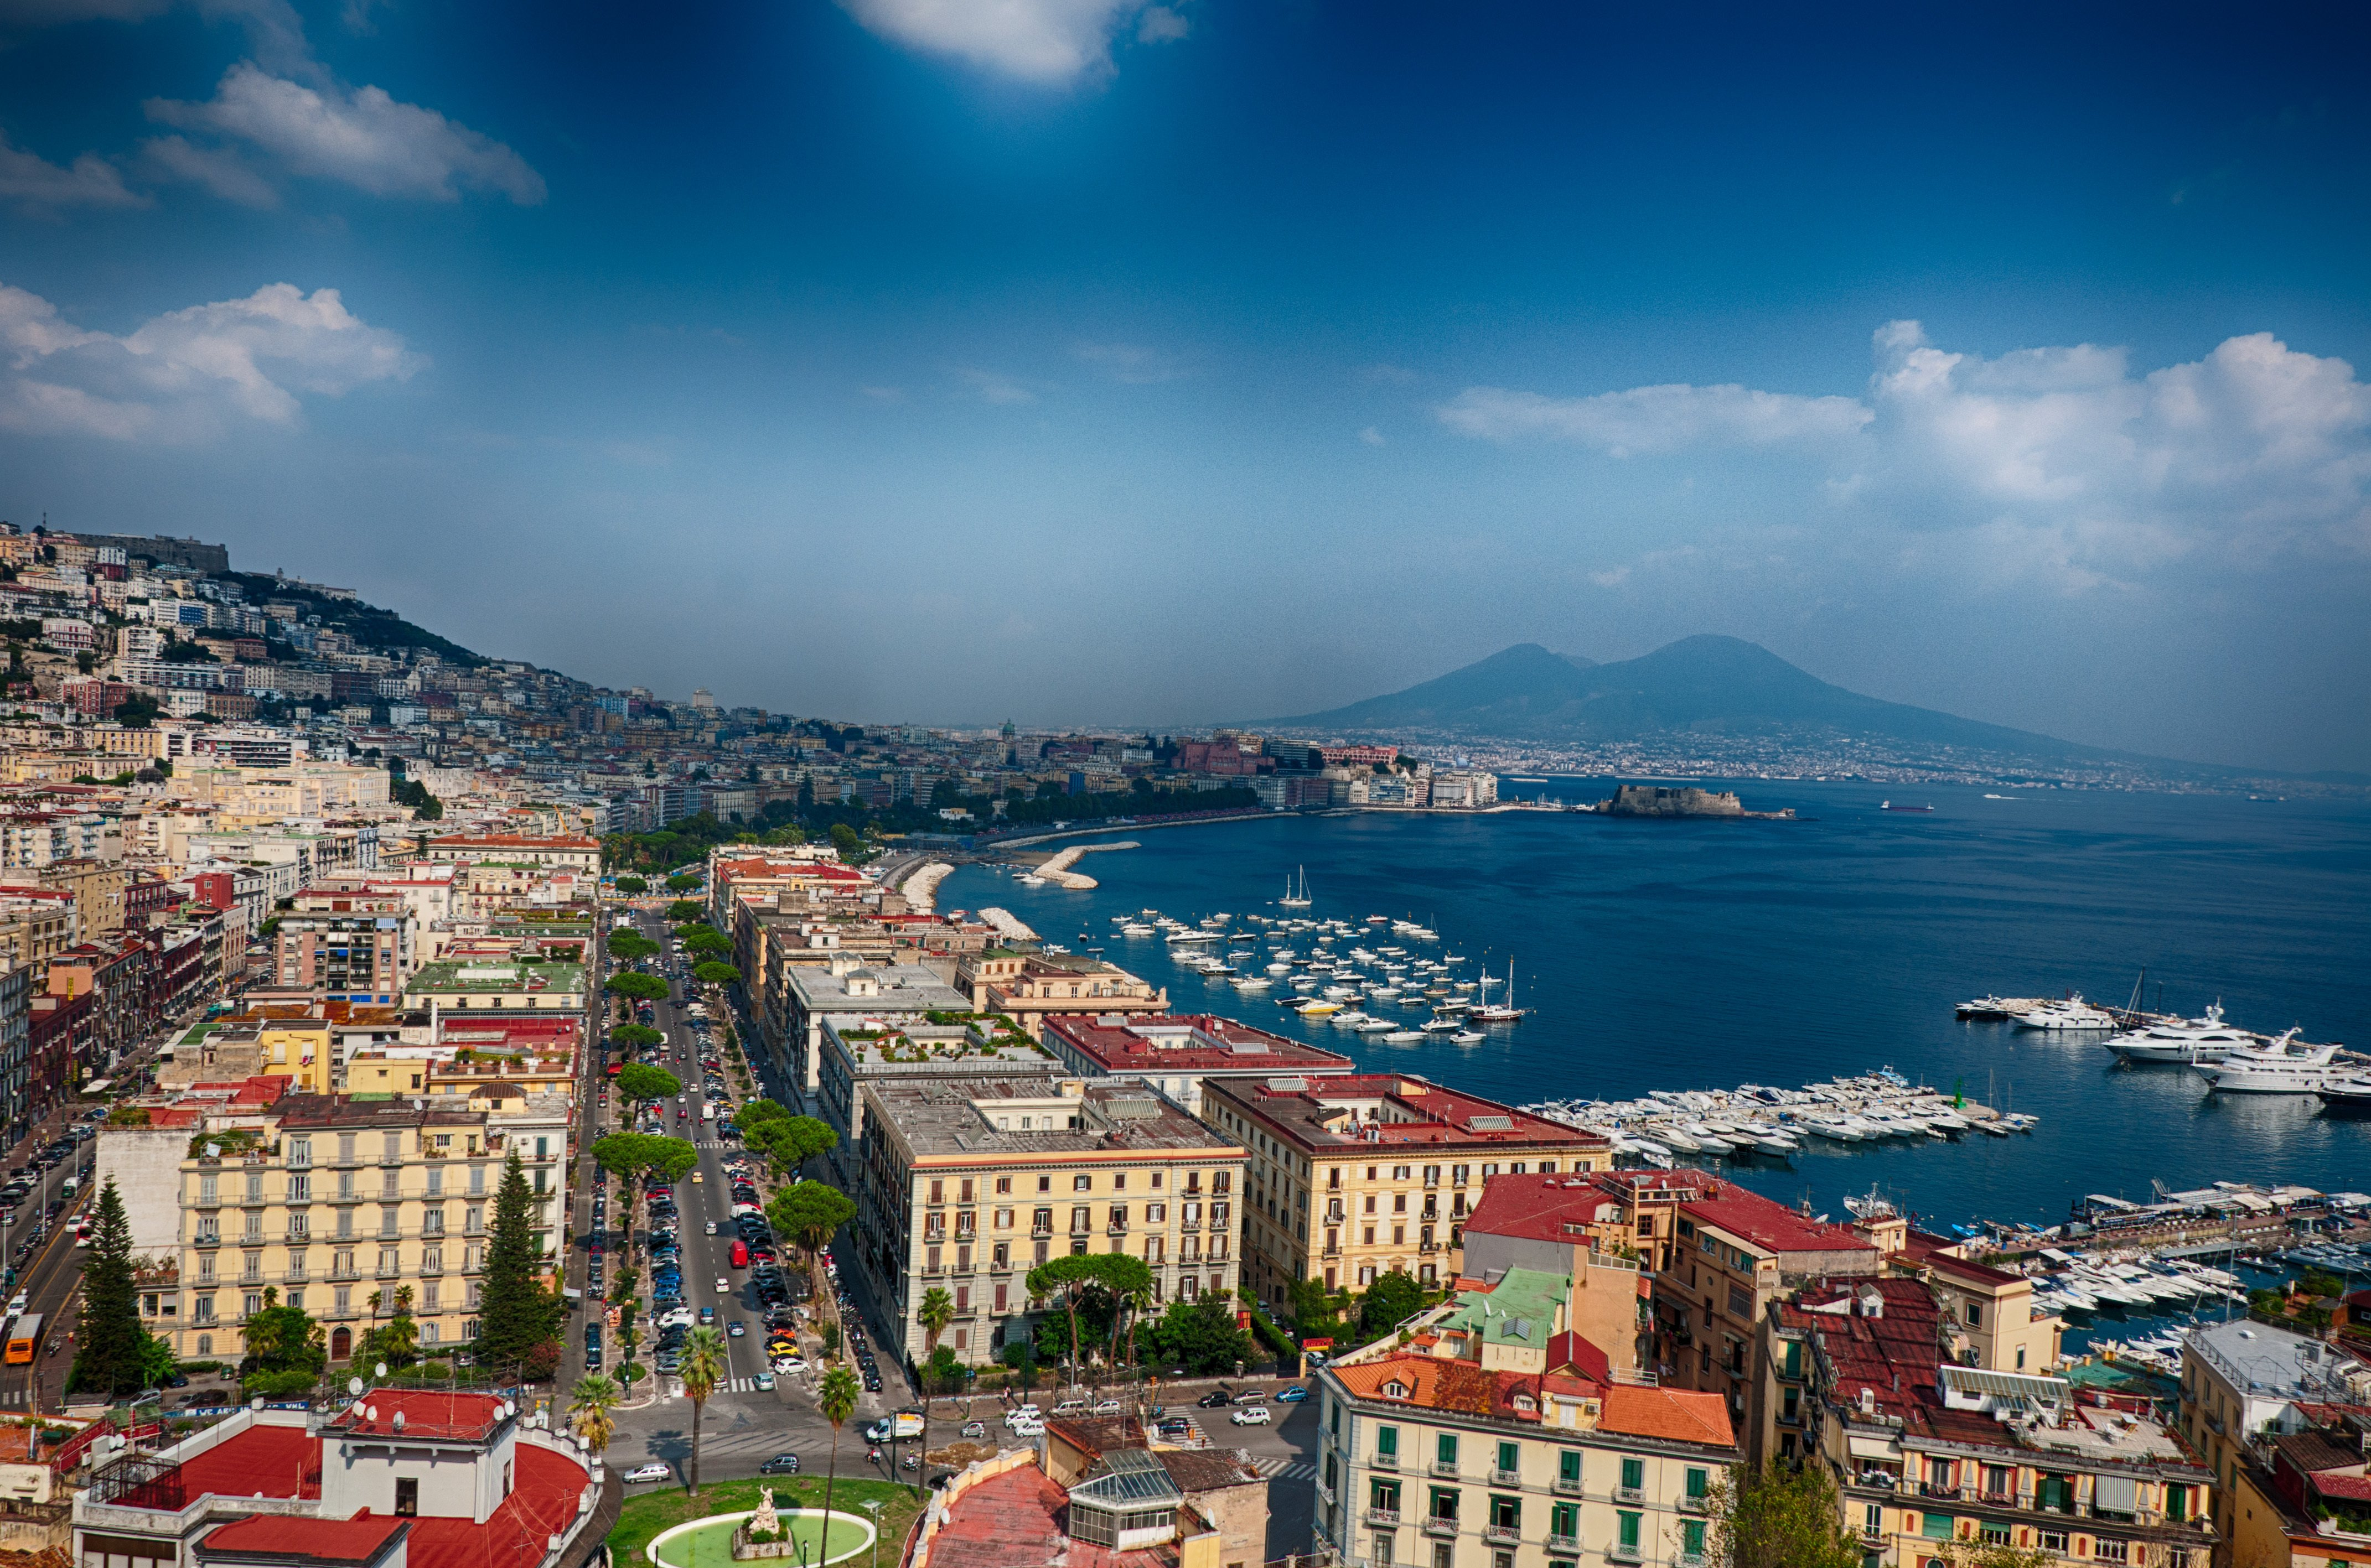 Empoli Italy  City pictures : NAPLES ITALY city cities building buildings italian Napoli wallpaper ...